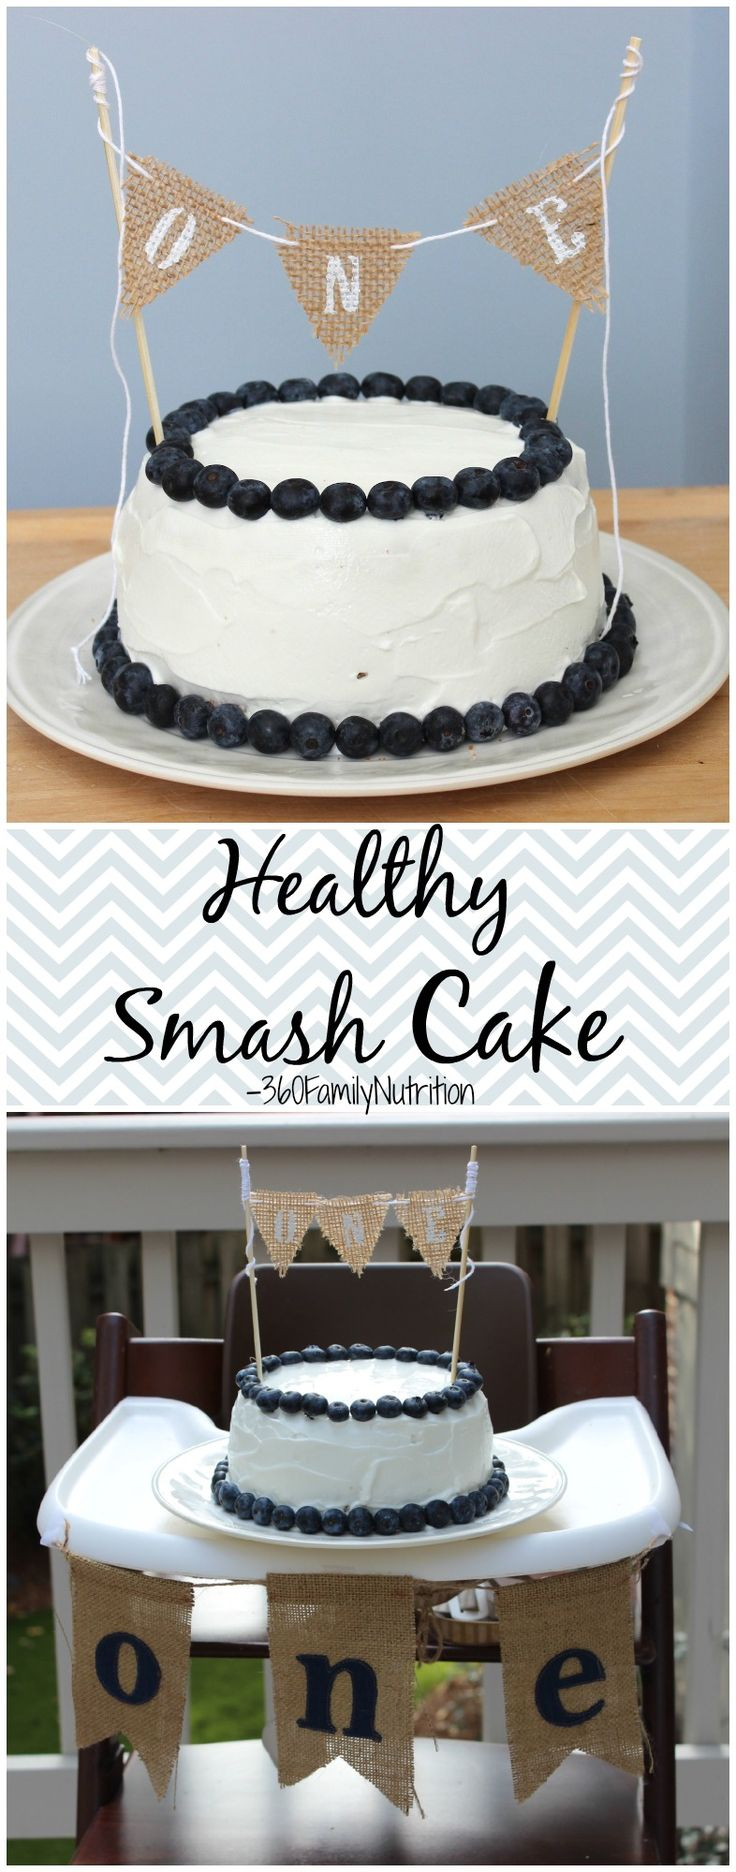 Healthy Smash Cake!  Give the little one a healthier 1st Birthday Cake!